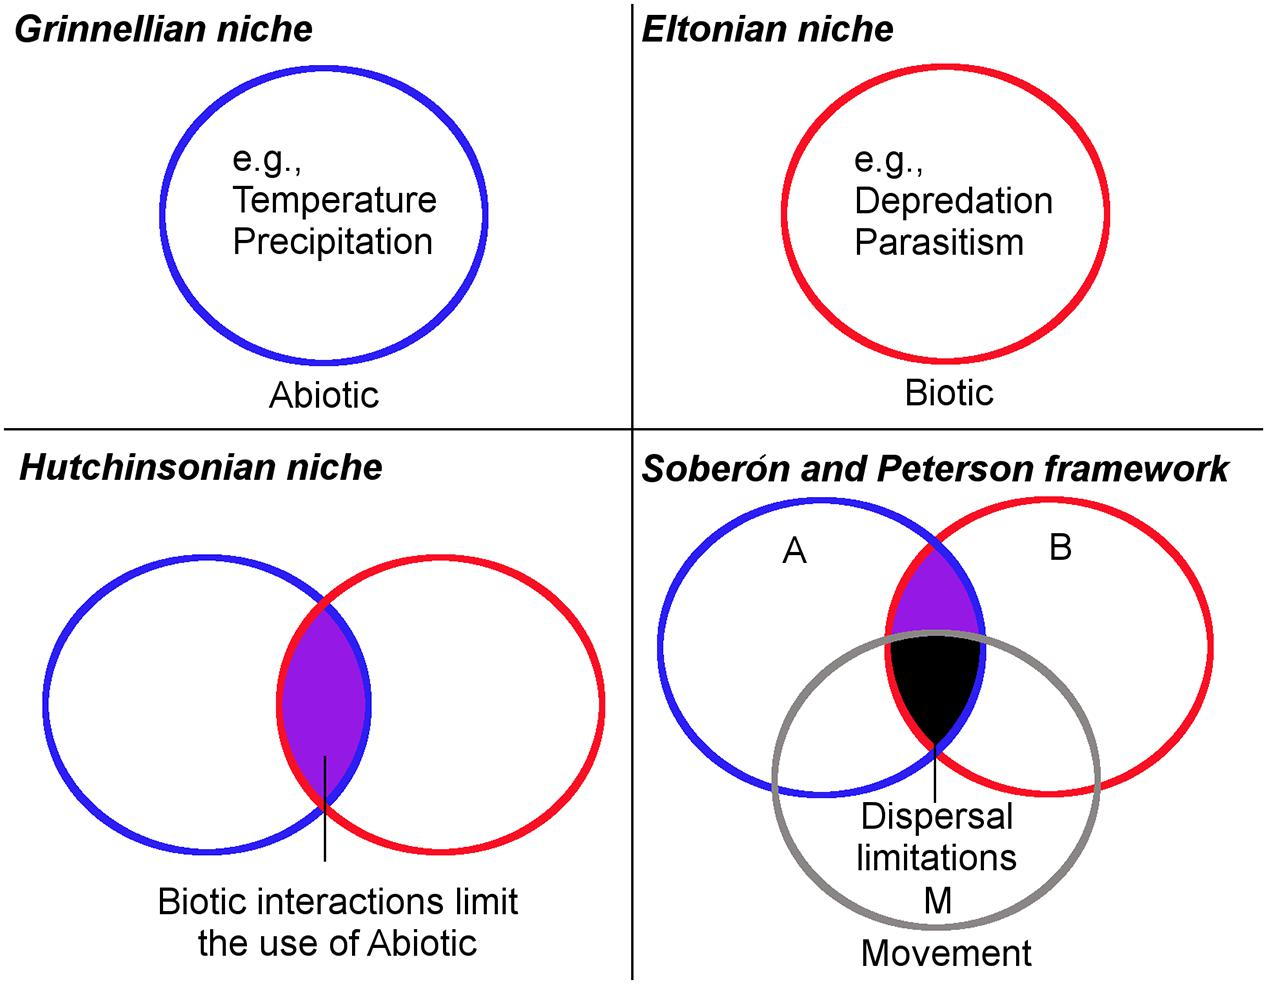 the hutchinsonian and eltonian shortfalls Full-text paper (pdf): eltonian shortfall due to the grinnellian view: functional ecology between the mismatch of niche concepts.